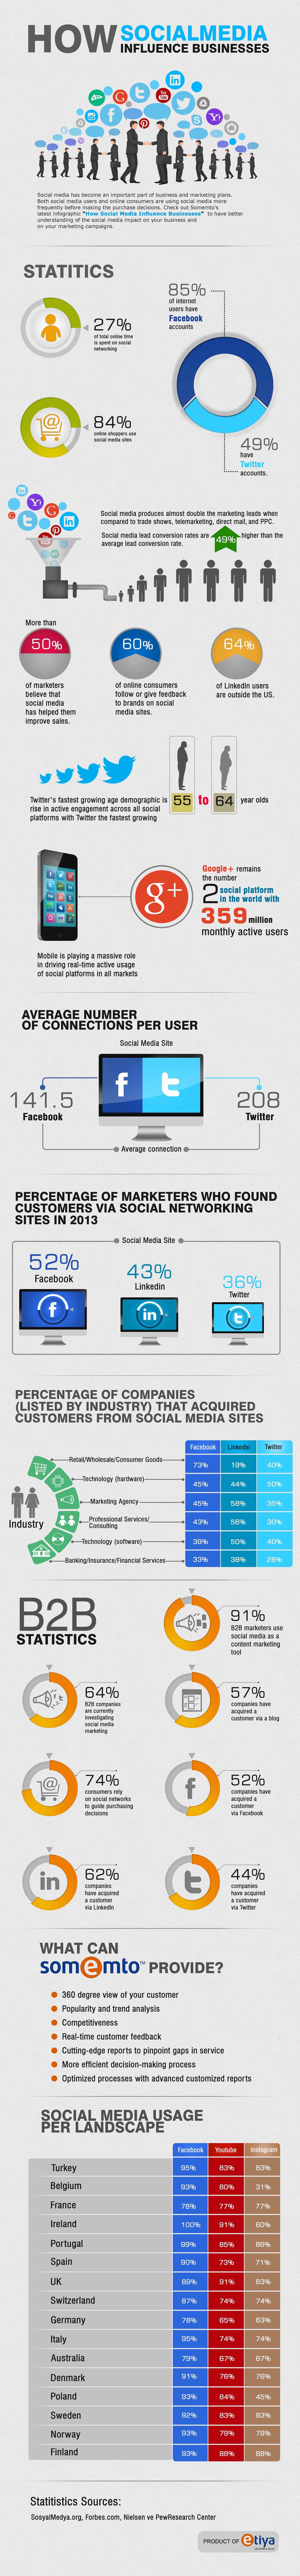 Infographic: Social Media Influence On Businesses